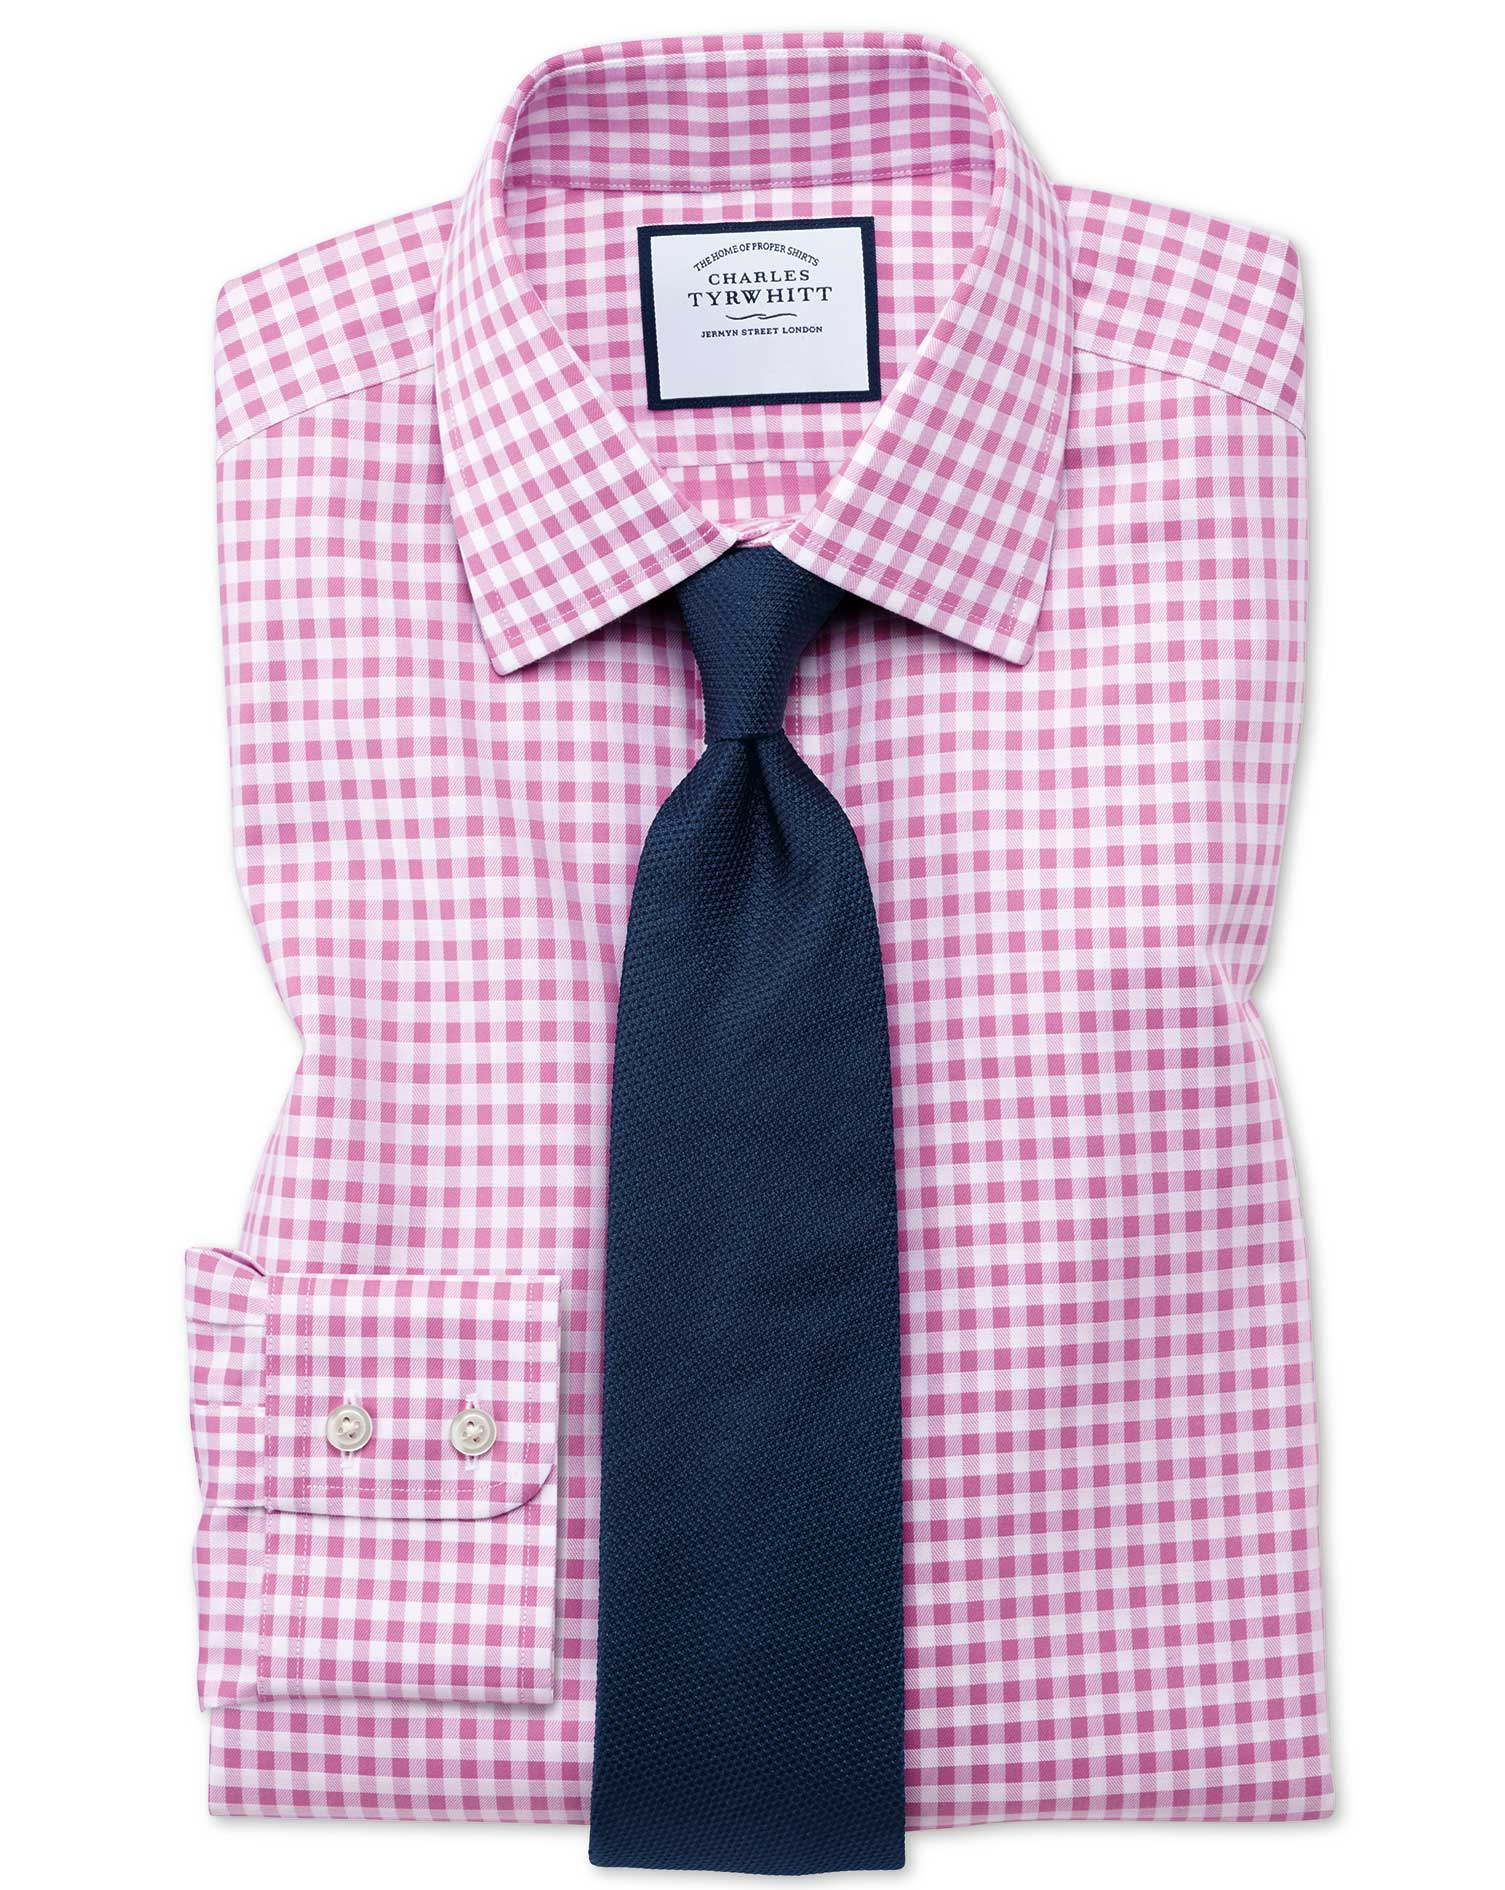 Classic Fit Non-Iron Gingham Pink Cotton Formal Shirt Single Cuff Size 18/37 by Charles Tyrwhitt